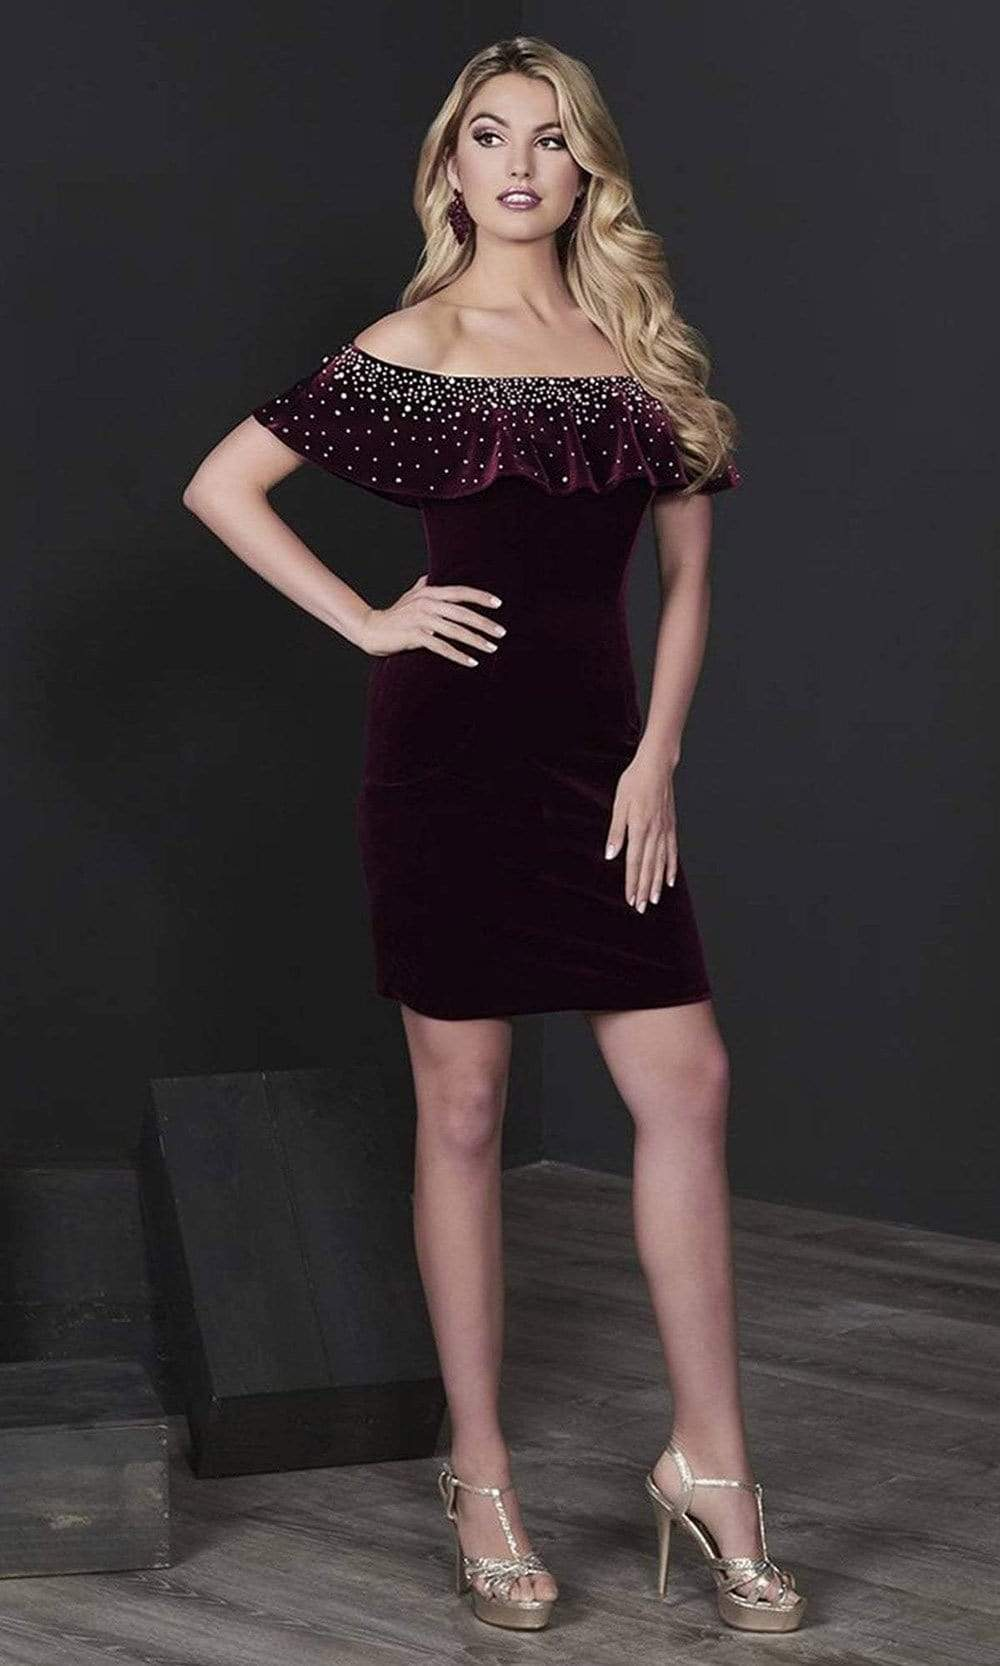 Tiffany Homecoming - 27231 Jewel Speckled Ruffled Off Shoulder Dress from Tiffany Homecoming